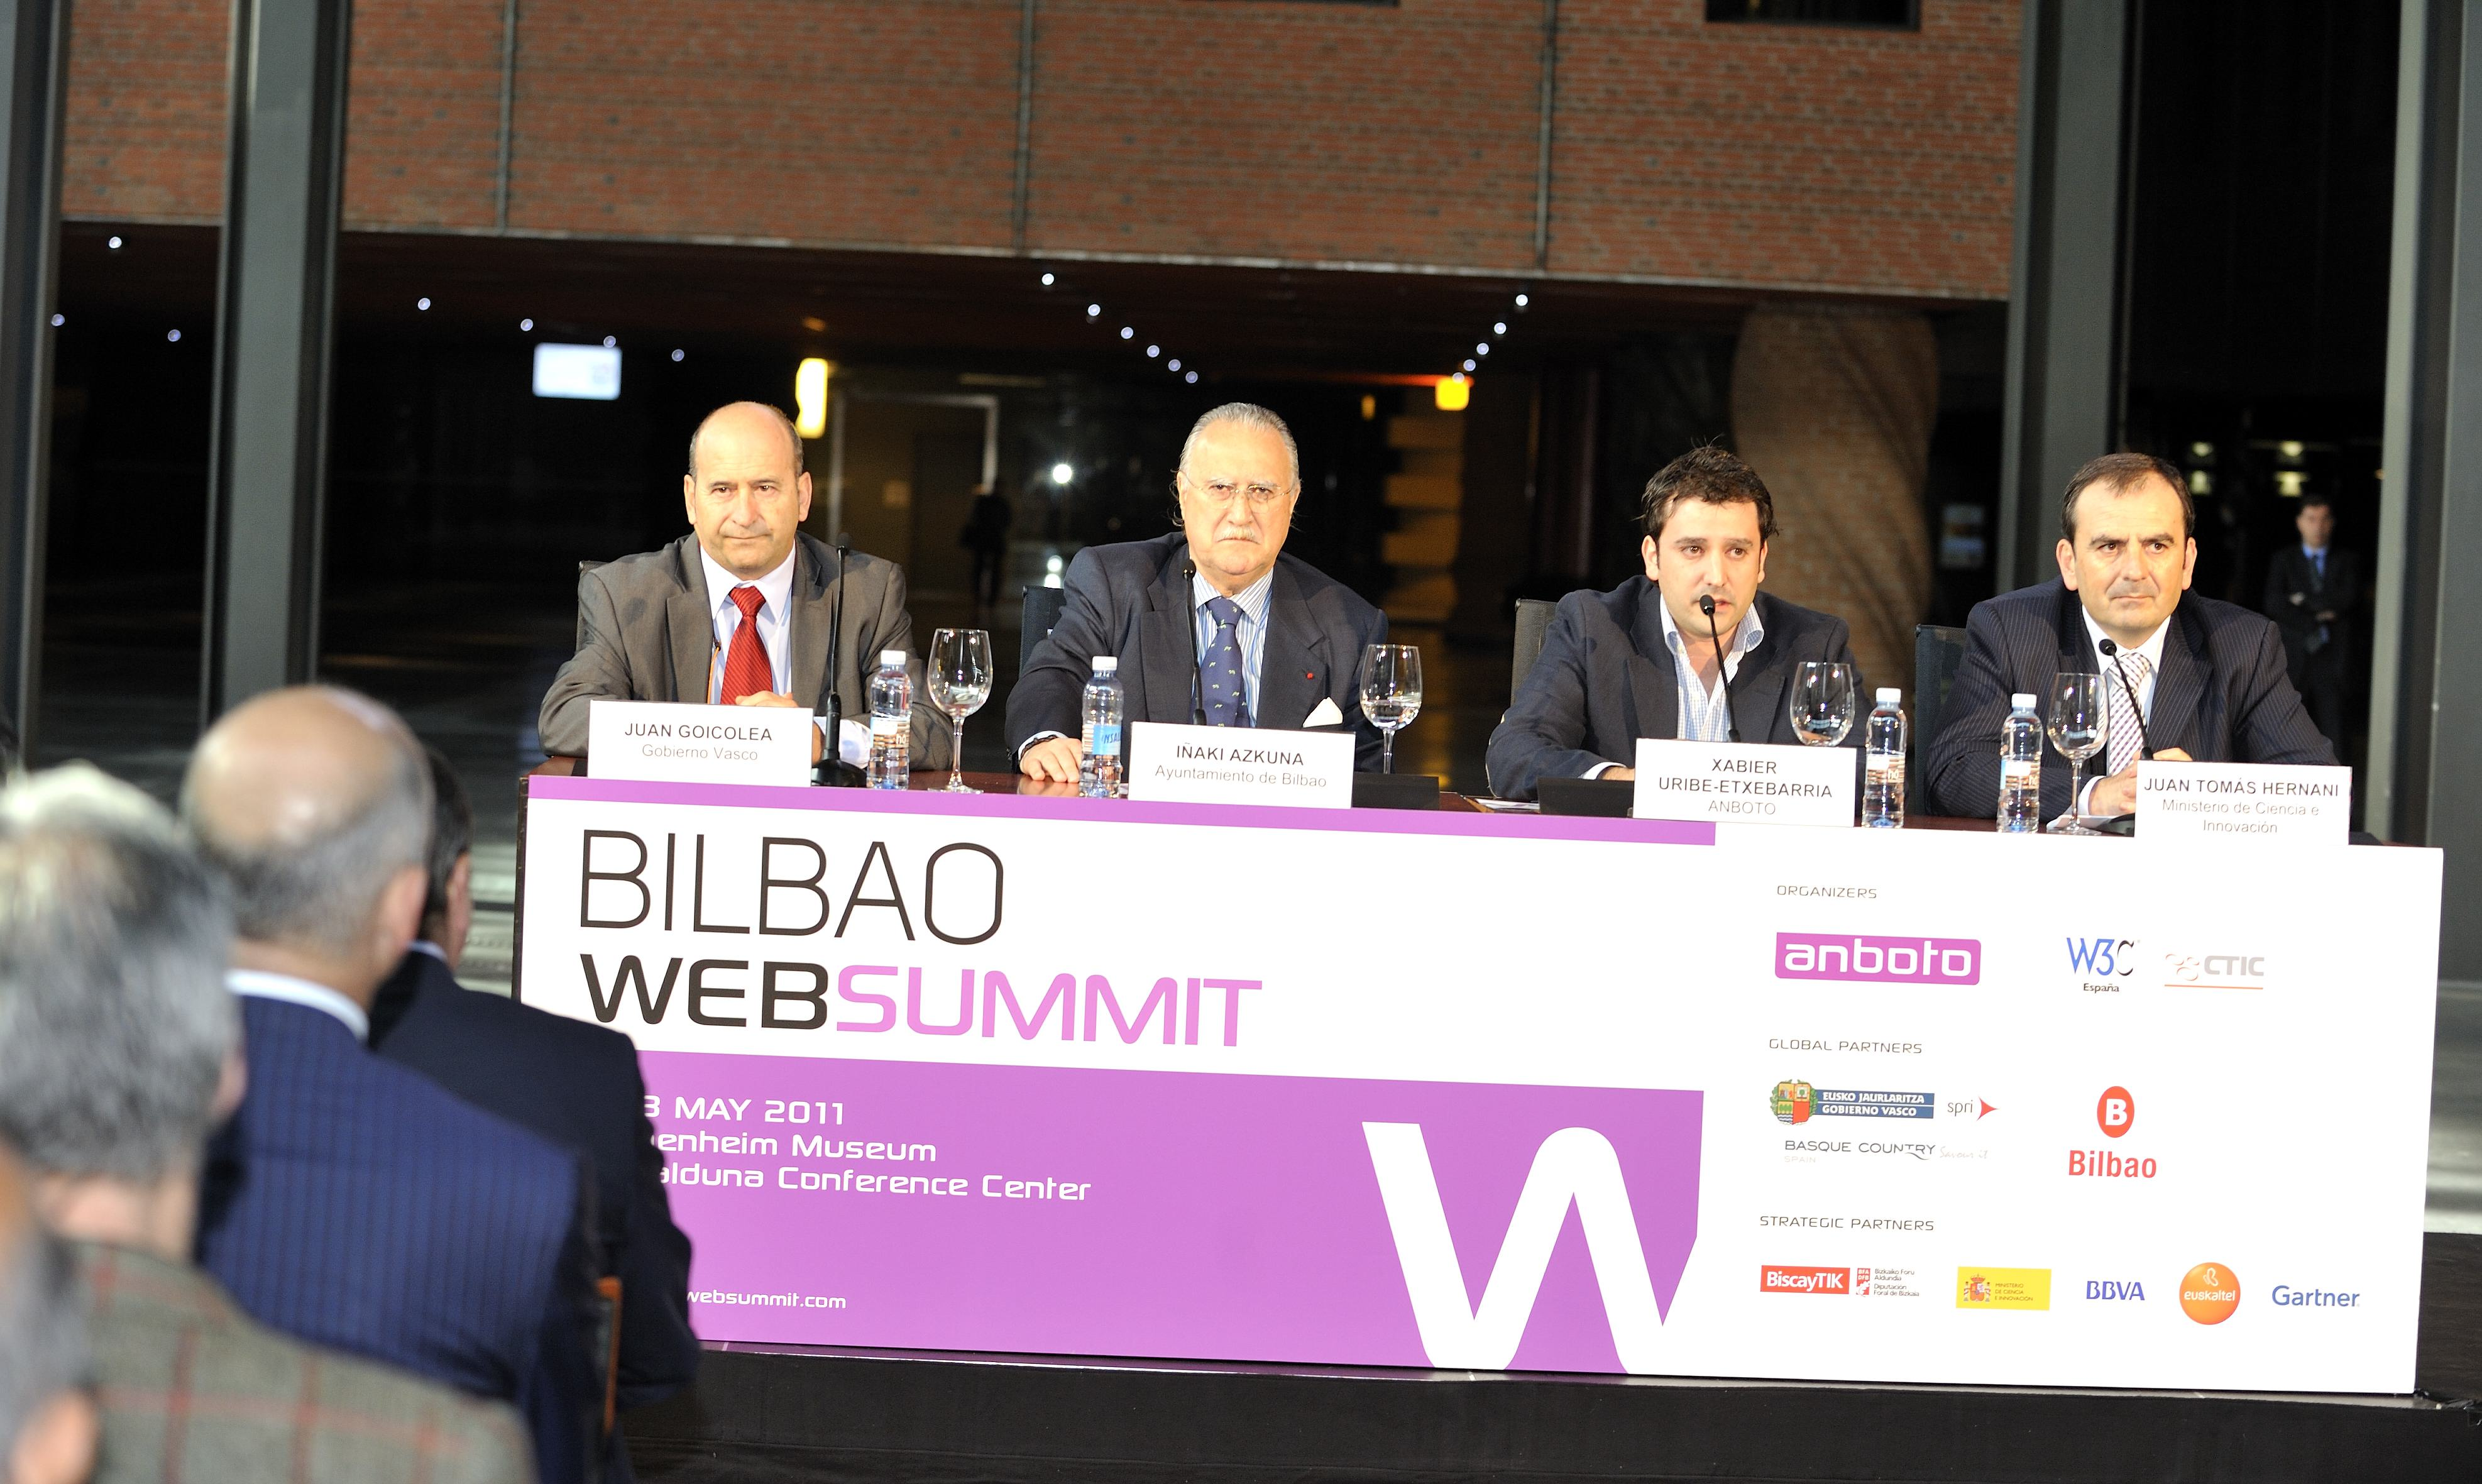 Bilbao Web Summit, the